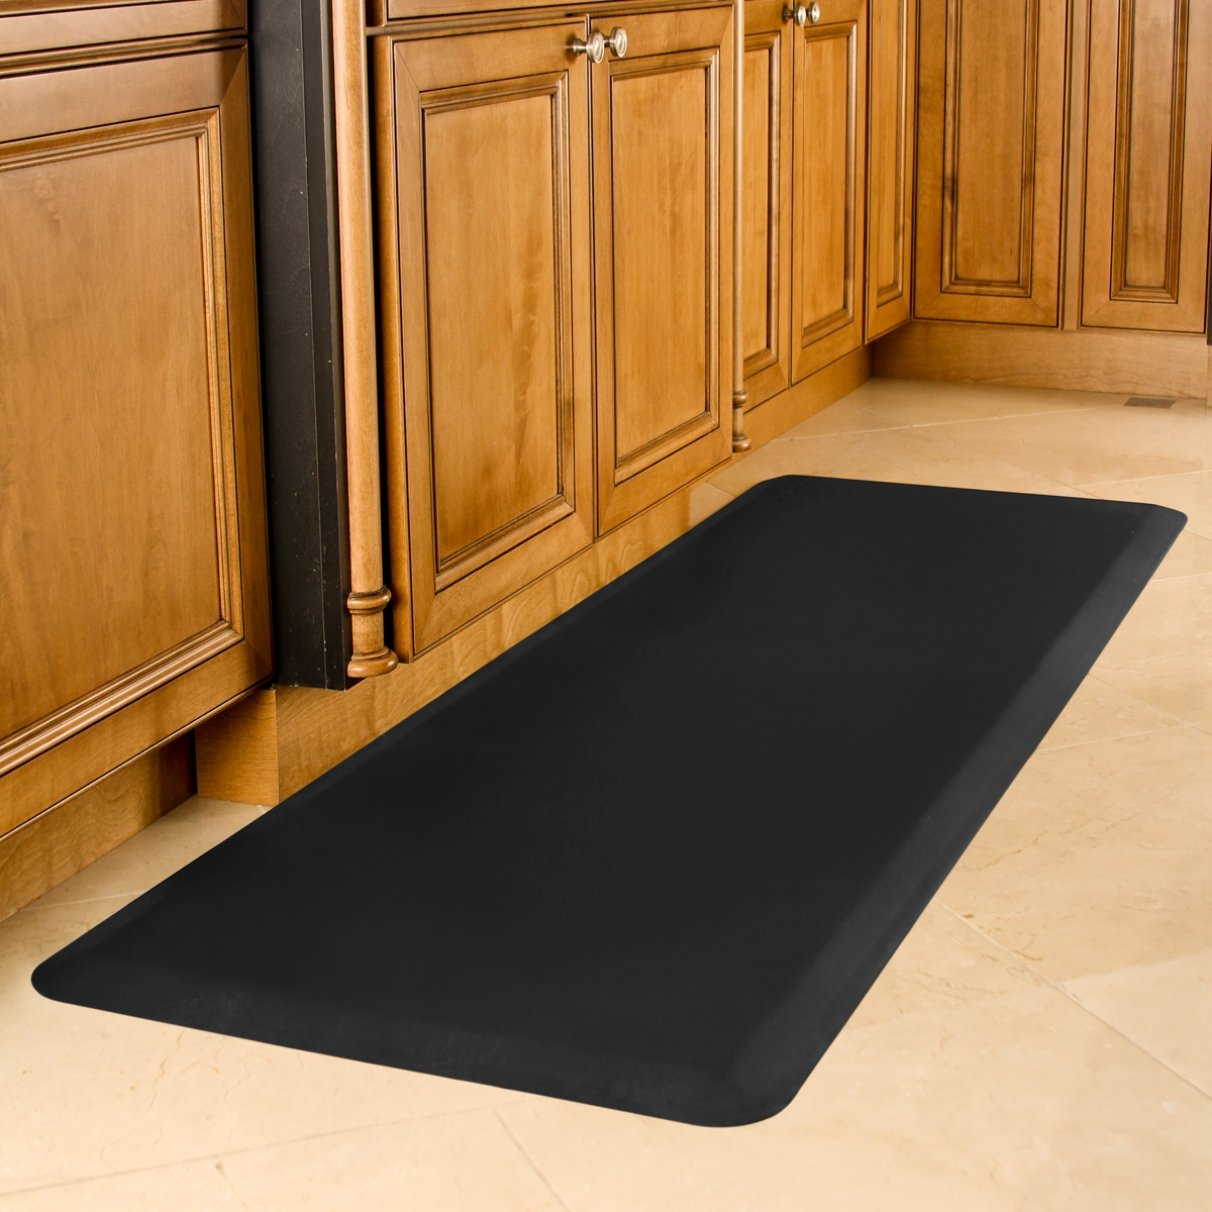 Kitchen Comfort Floor Mats Amazoncom Wellnessmats Original Anti Fatigue 36 Inch By 24 Inch